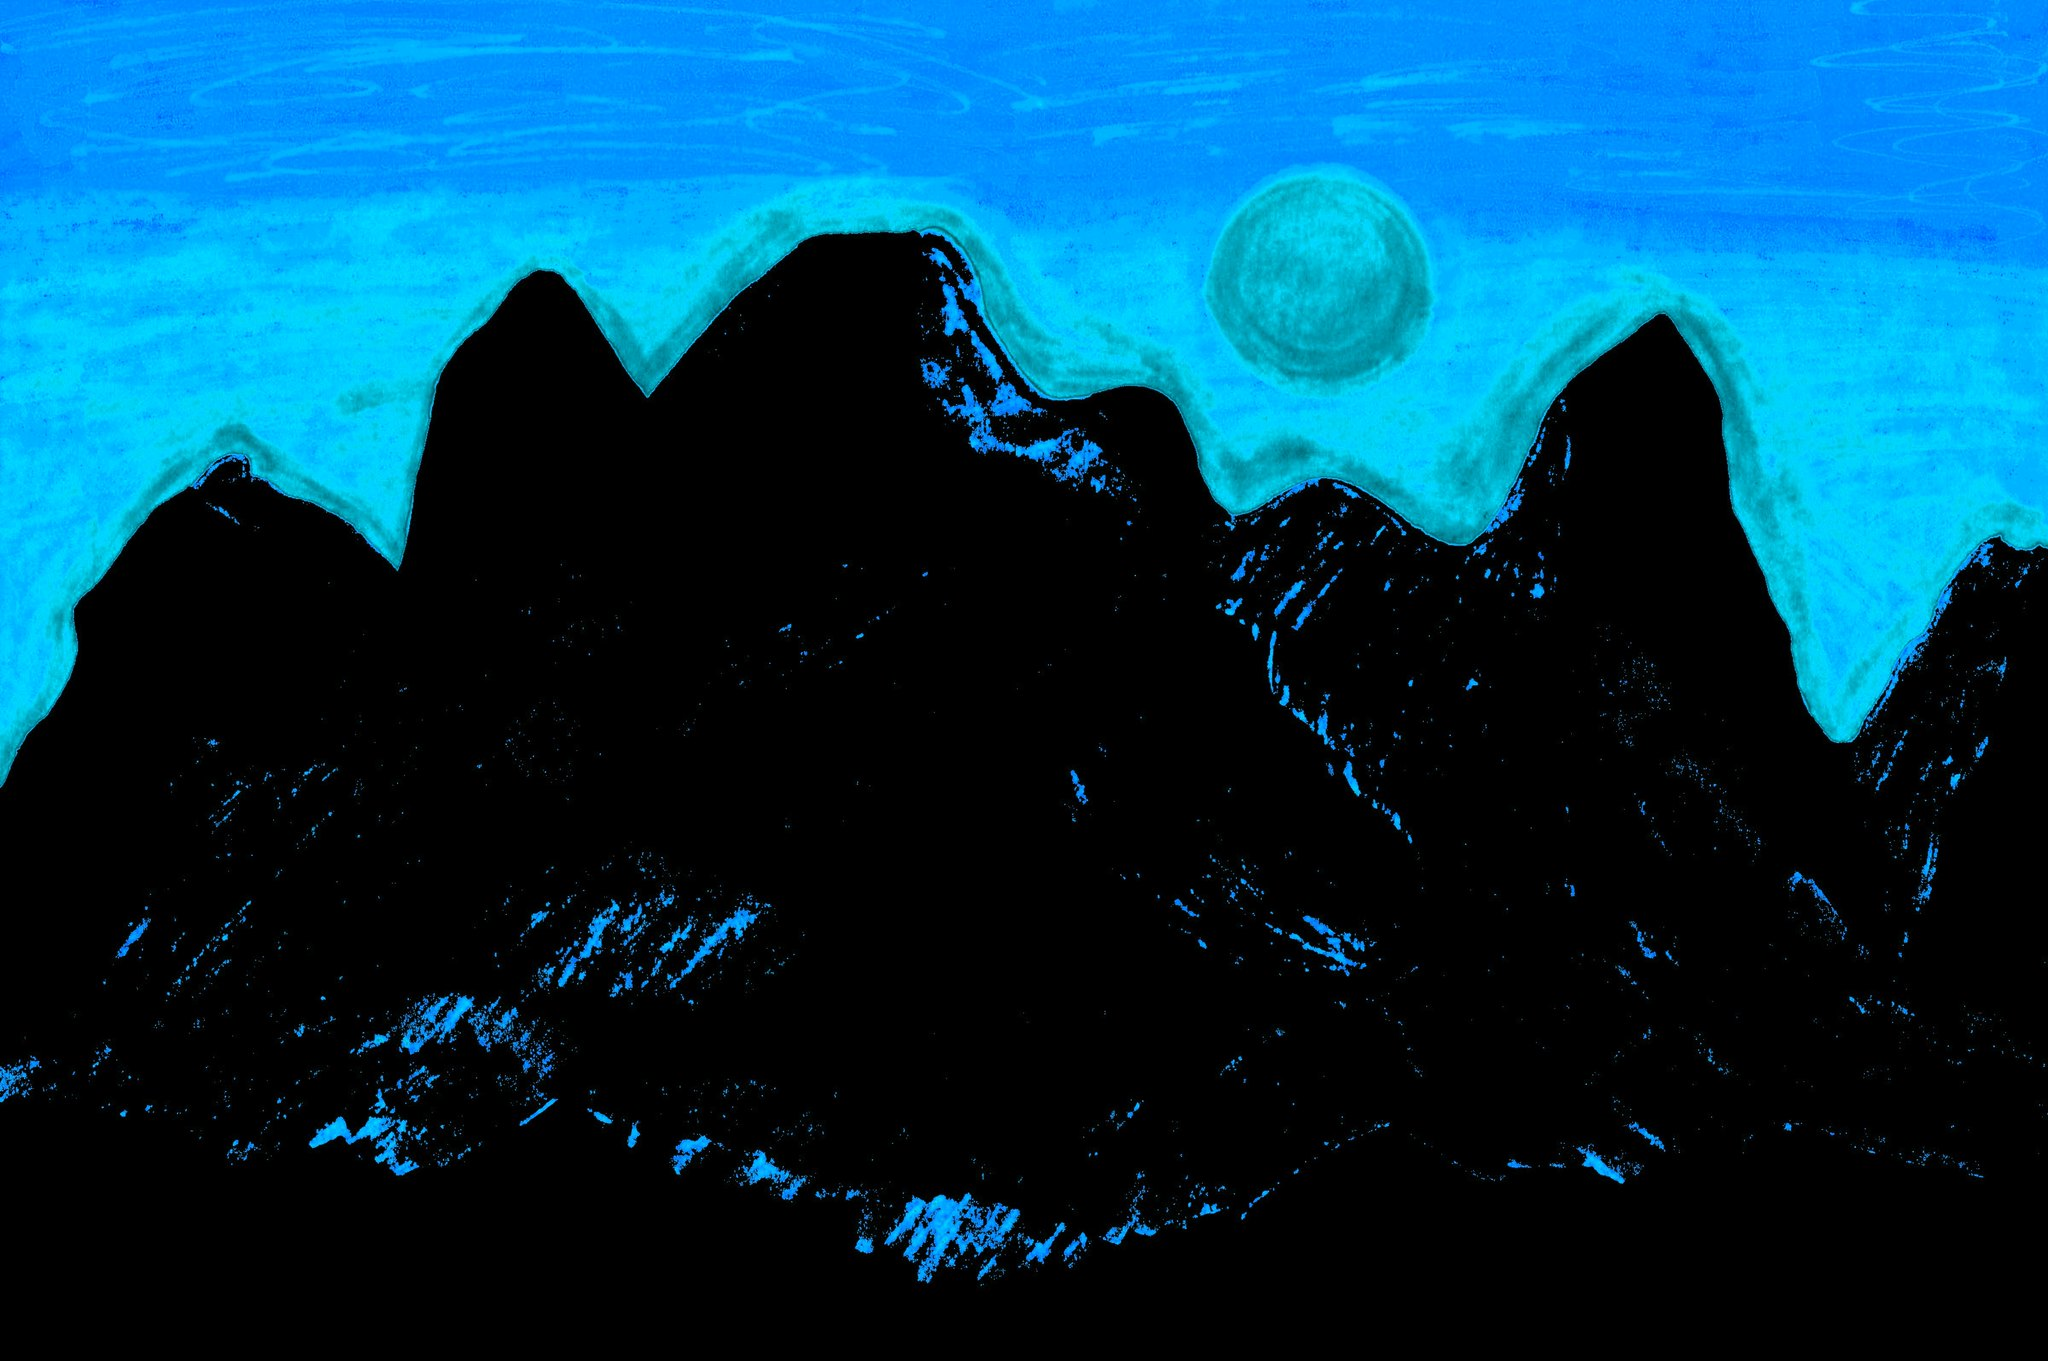 Moon Glow Over The Cascades 3 By Sherrie D. Larch